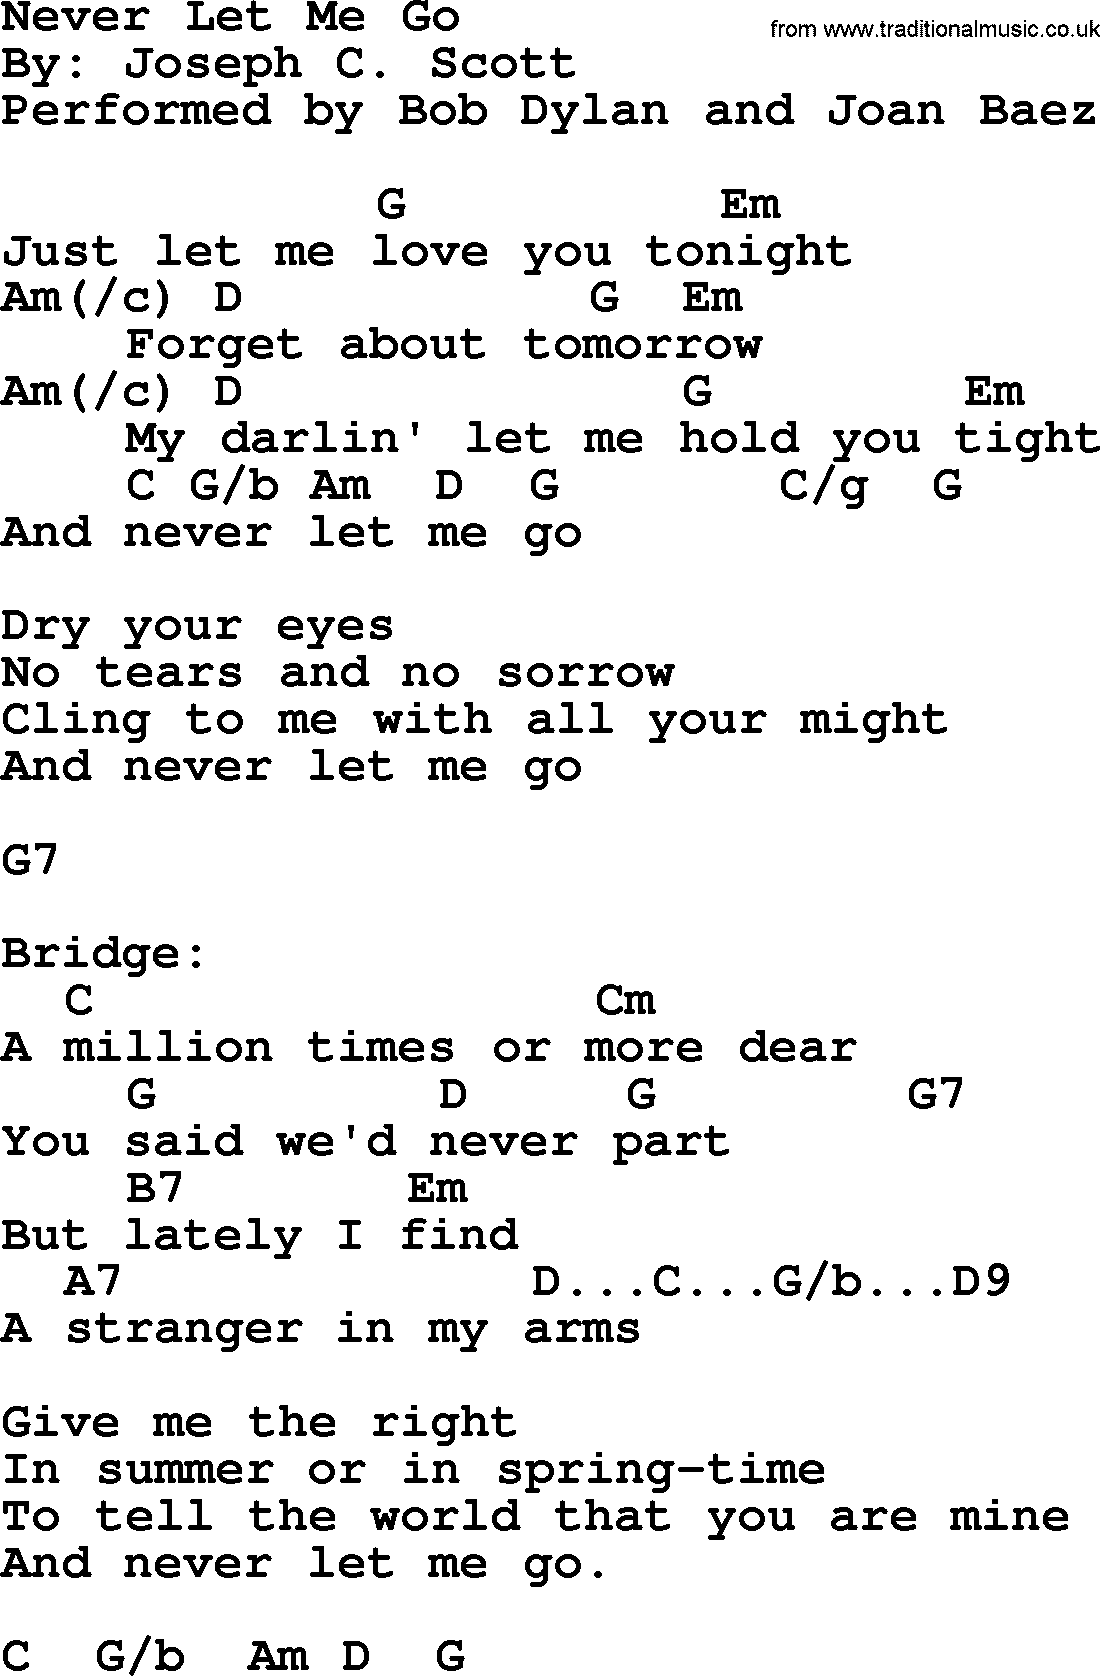 Bob Dylan song - Never Let Me Go, lyrics and chords